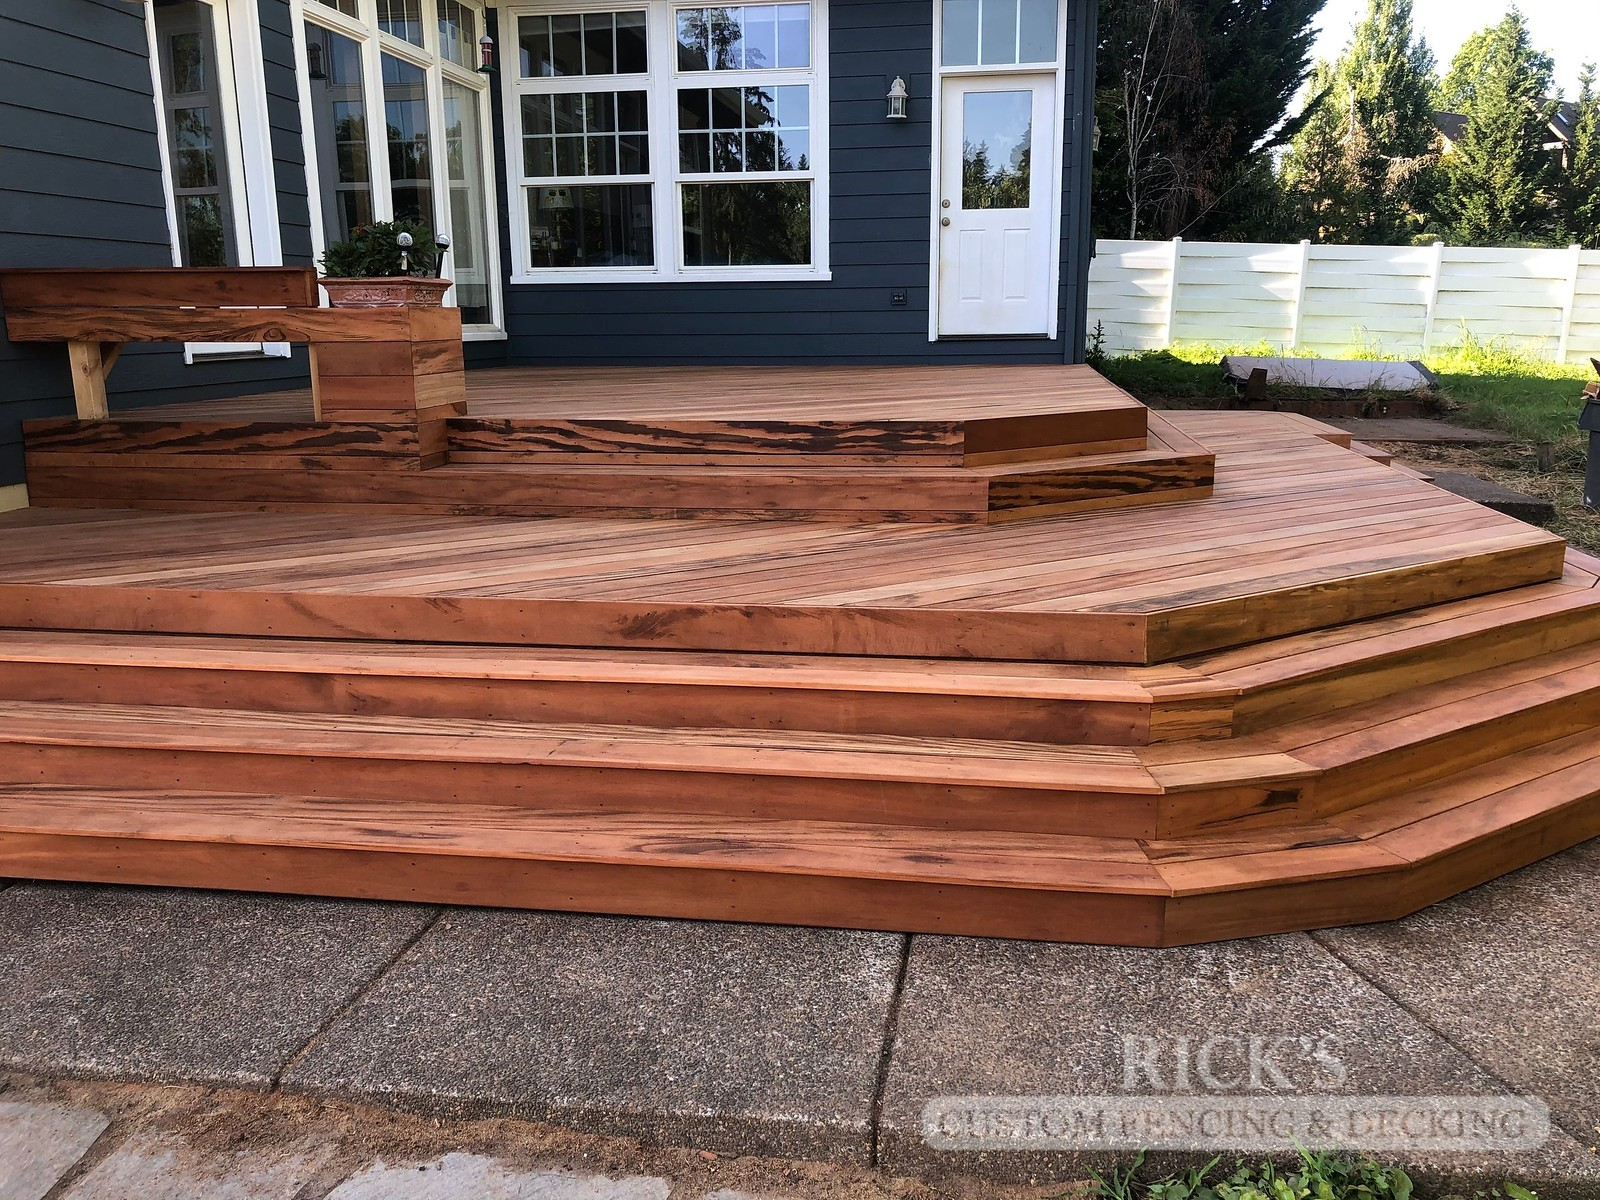 1131 - TigerWood Hardwood Decking